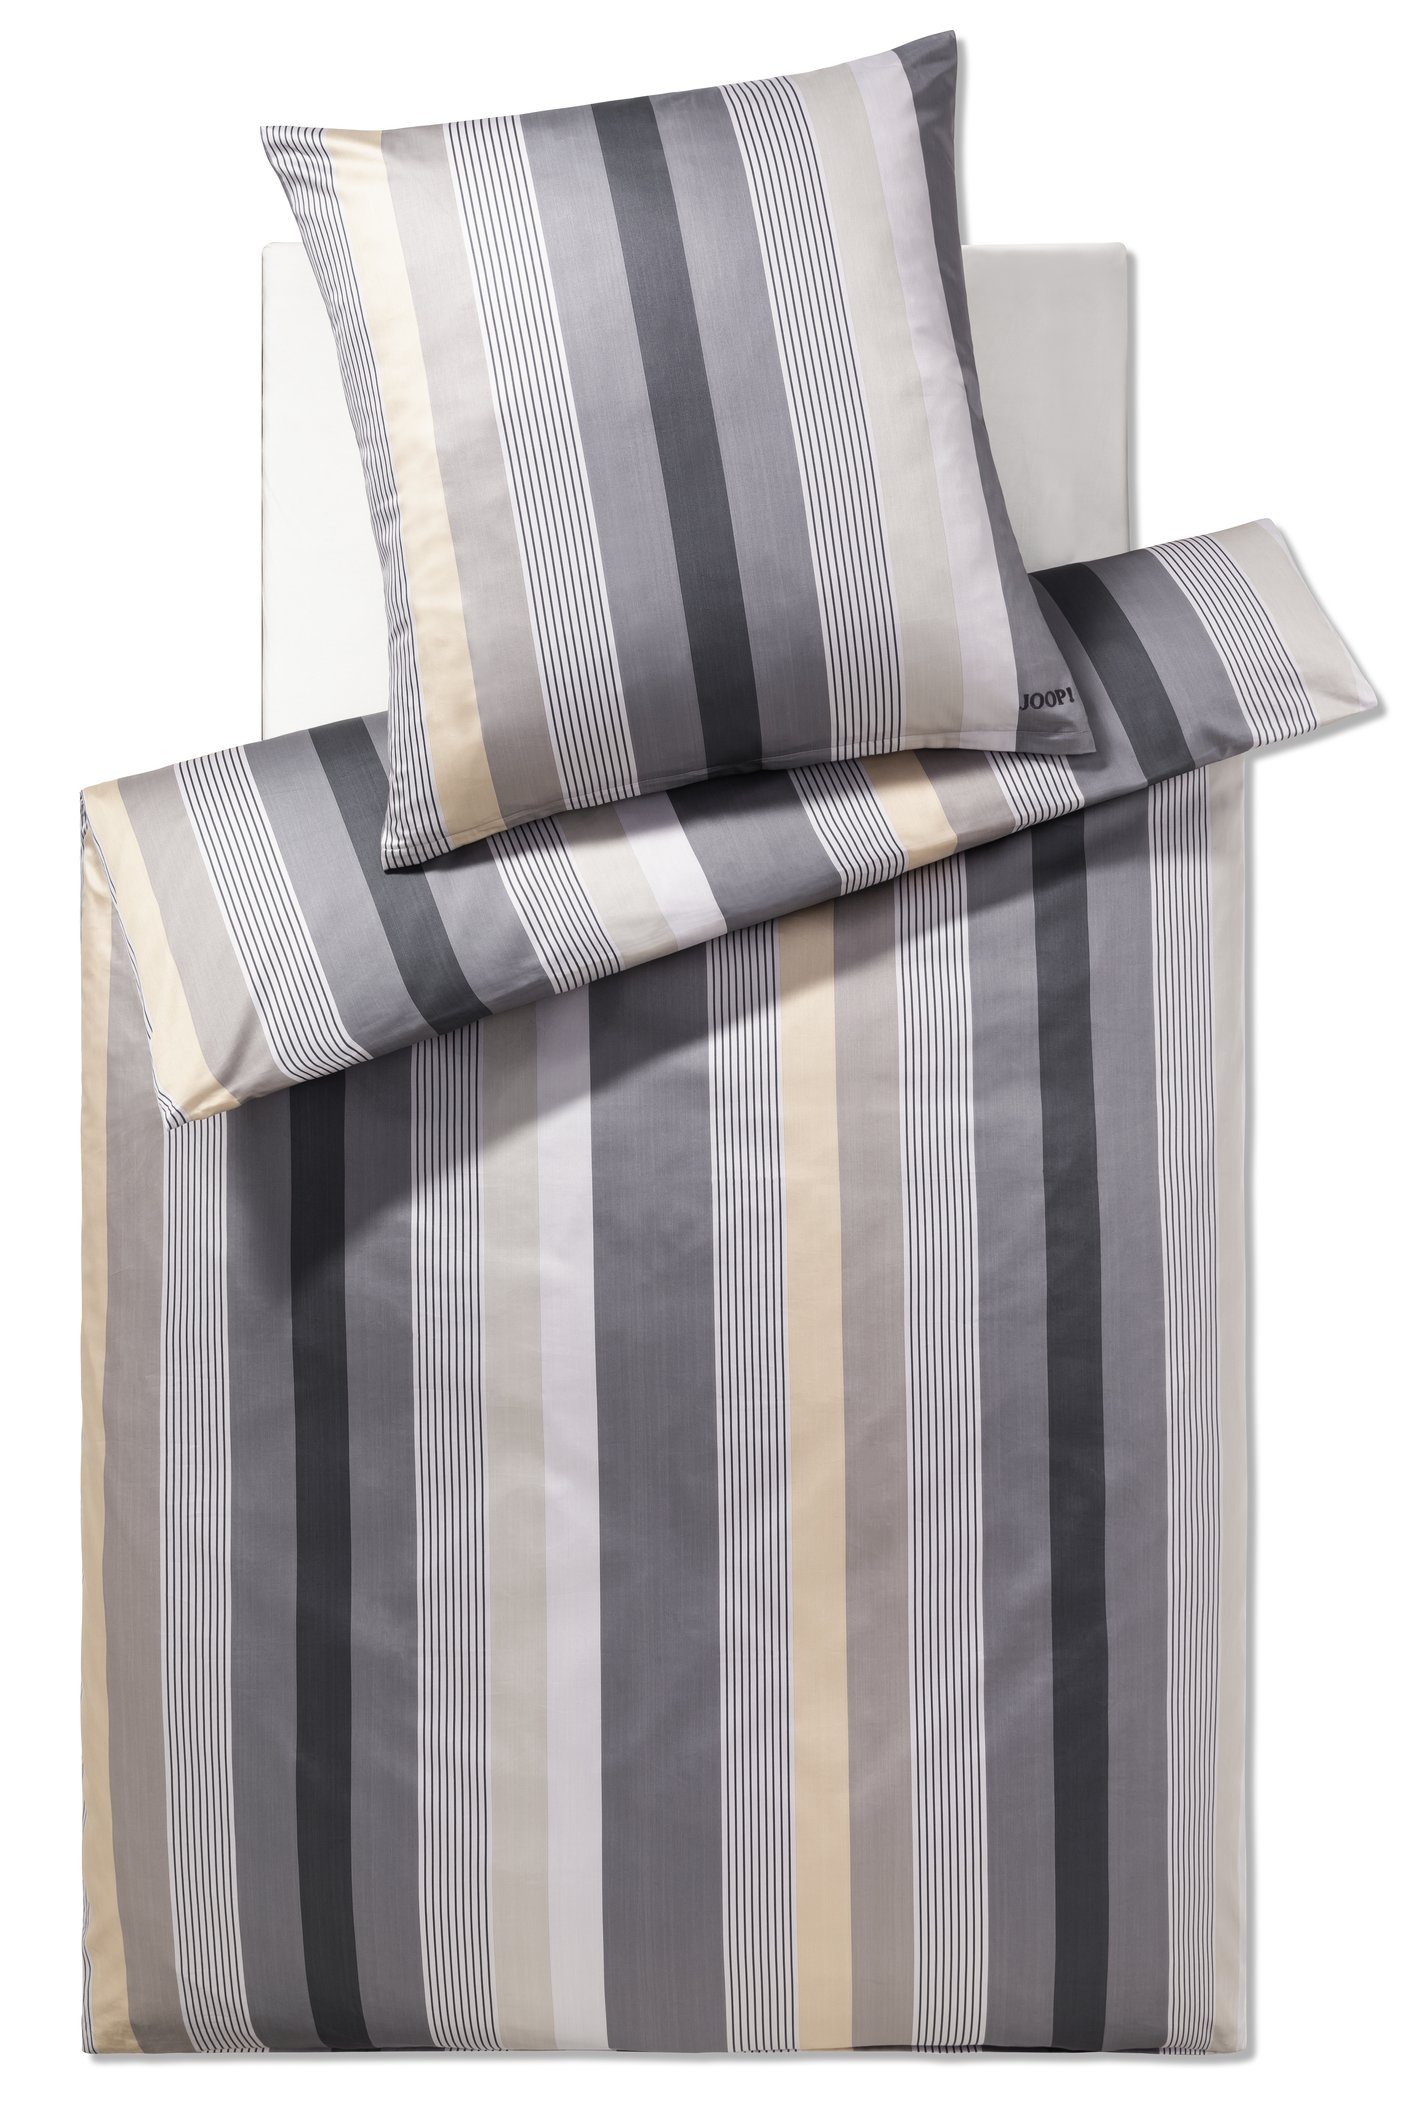 JOOP! Bettwäsche Stripes 4093-07 Stone 135x200 cm Kollektion 2020